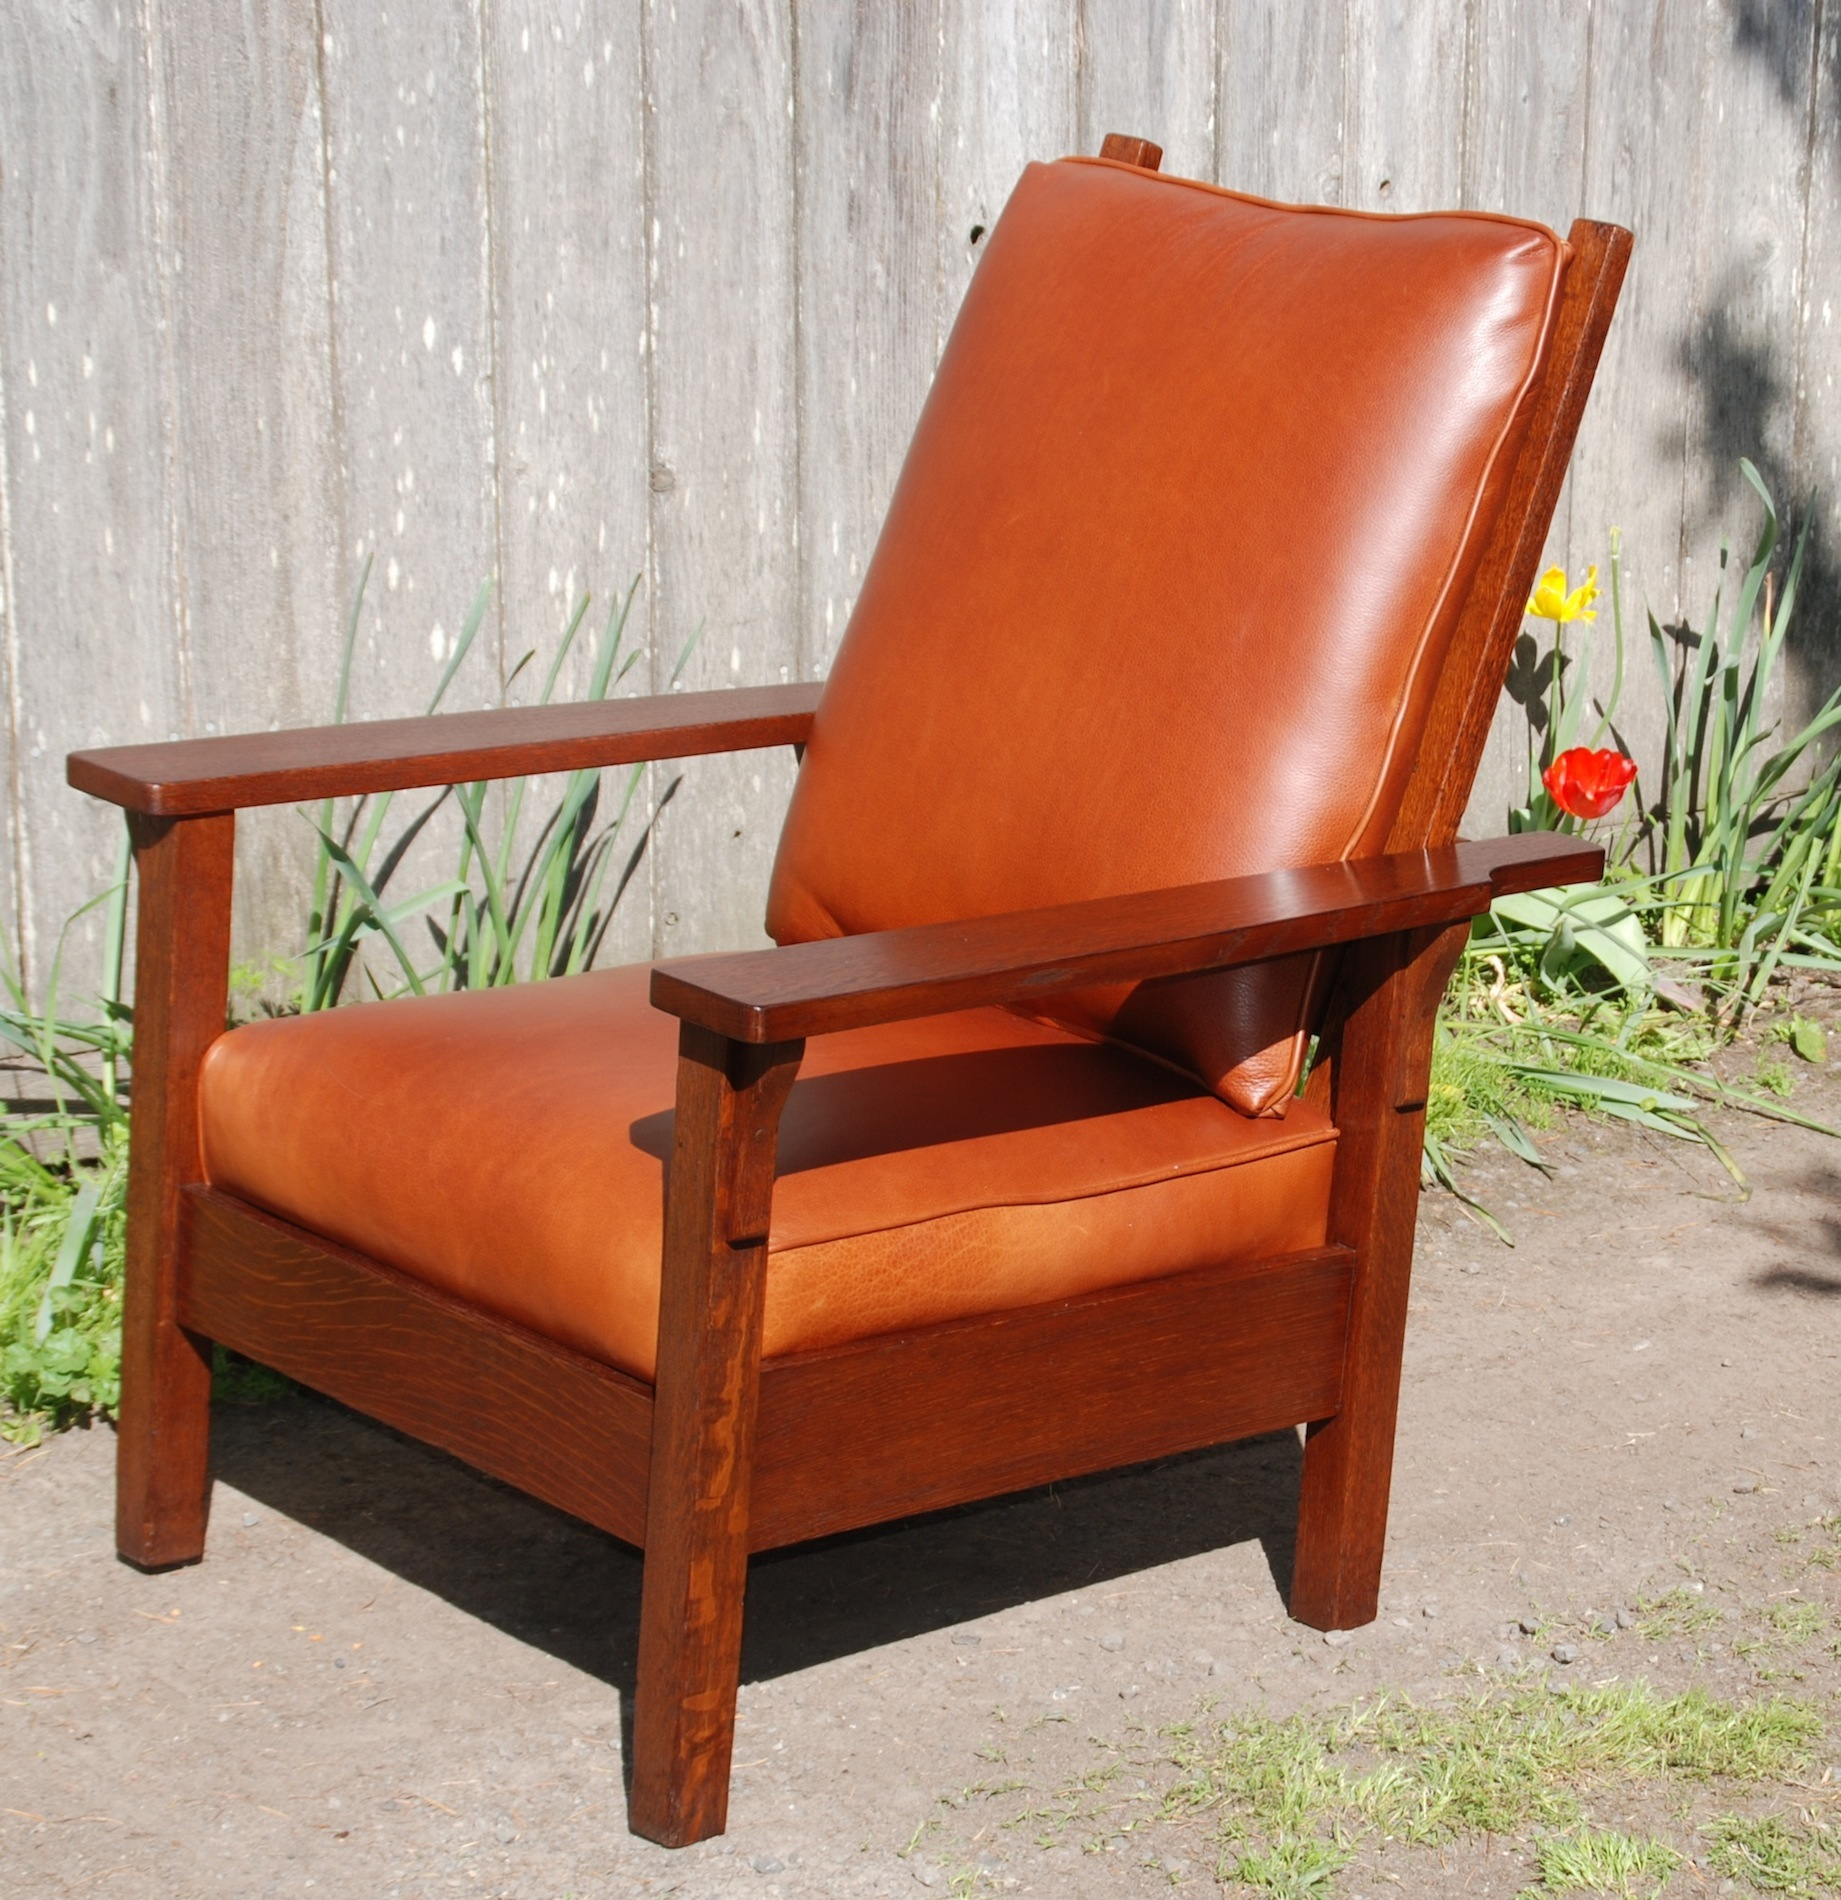 Morris chair cushions - Gustav Stickley Signature Red Decal 1905 To 1912 Located On The Inside Of The Rear Seat Stretcher